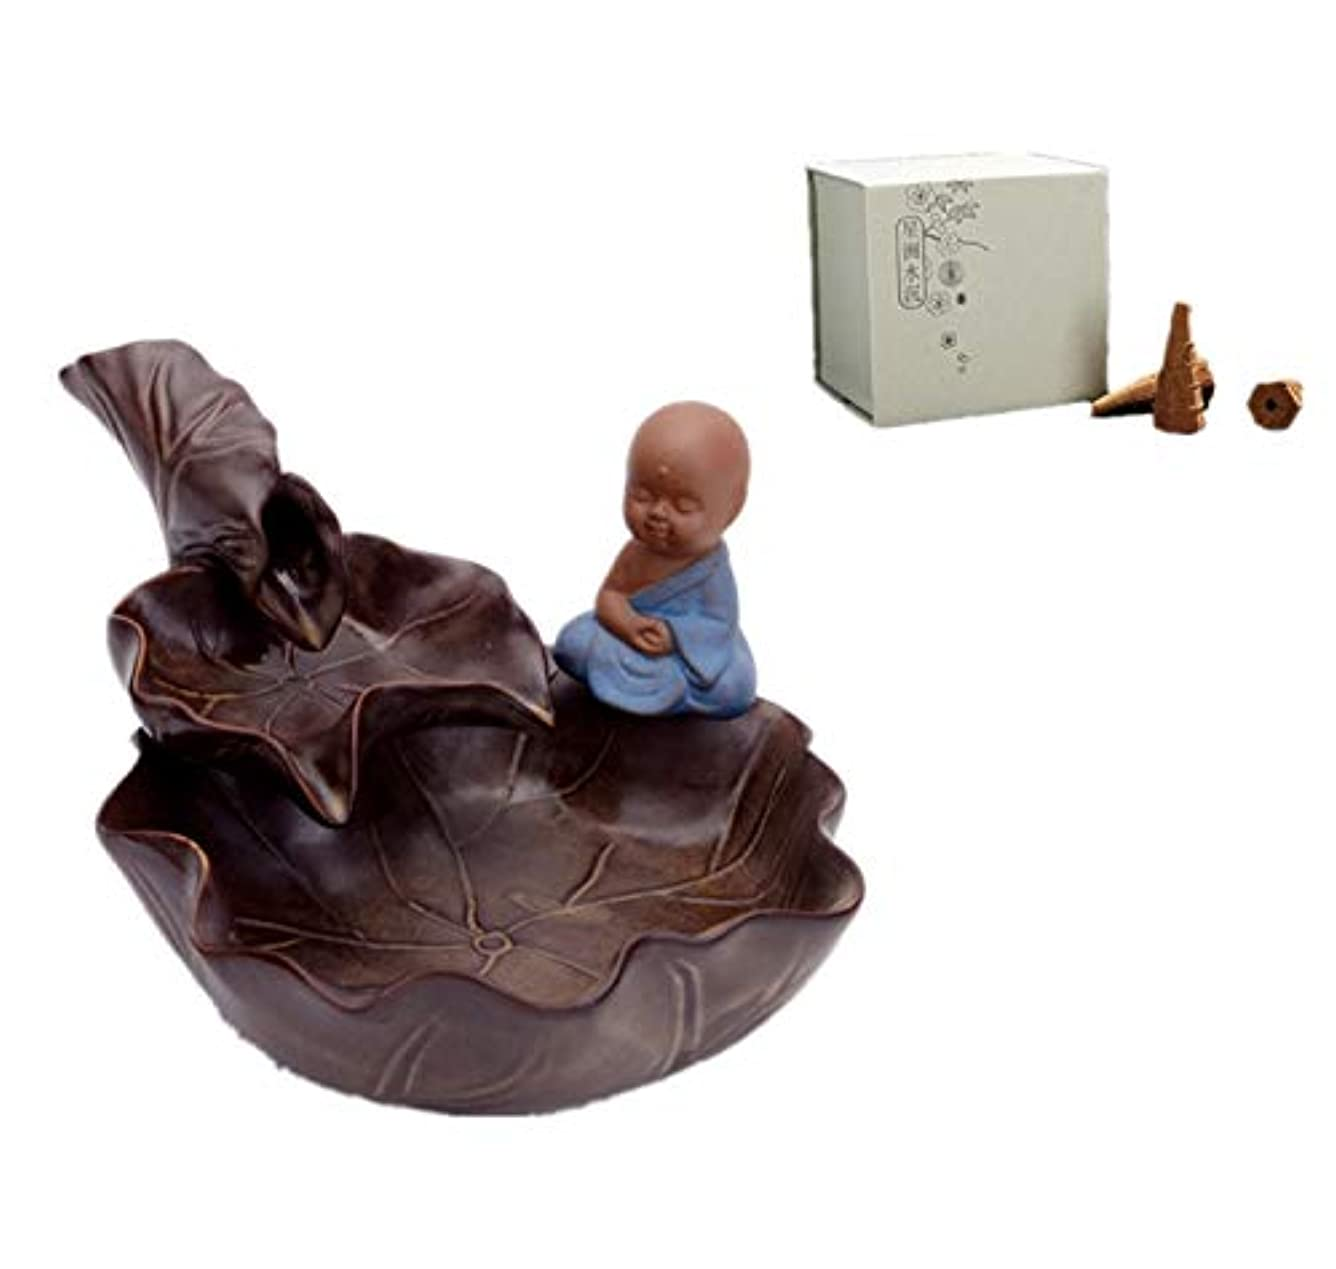 トラブル懐疑的ペックXPPXPP Reflux Incense Burner With 40 Reflux Cones, Household Ceramic Reflux Cone-Shaped Candlestick Burner